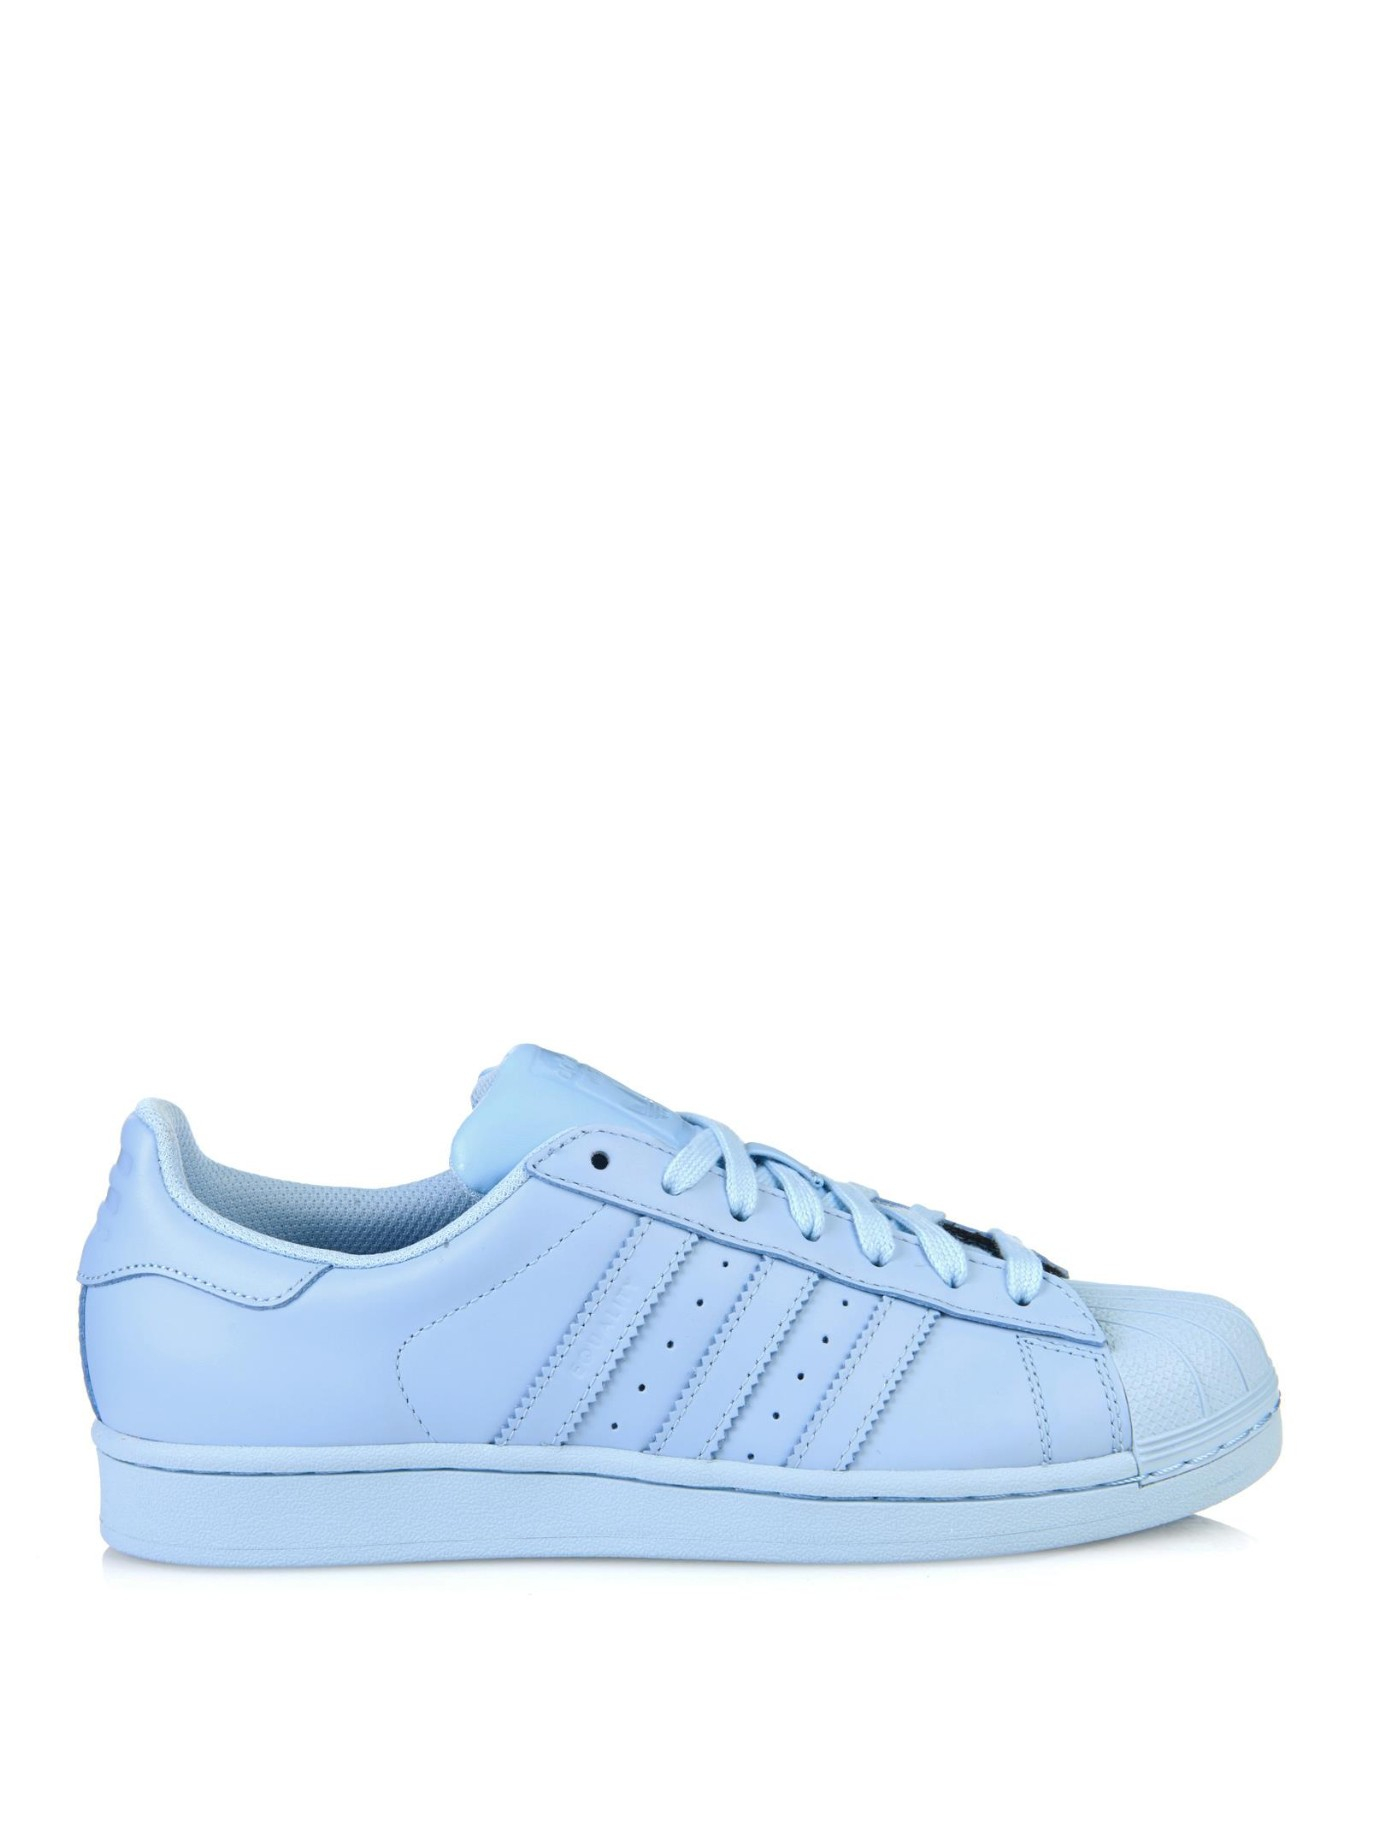 Adidas Superstar Supercolor Leather Trainers In Blue Lyst